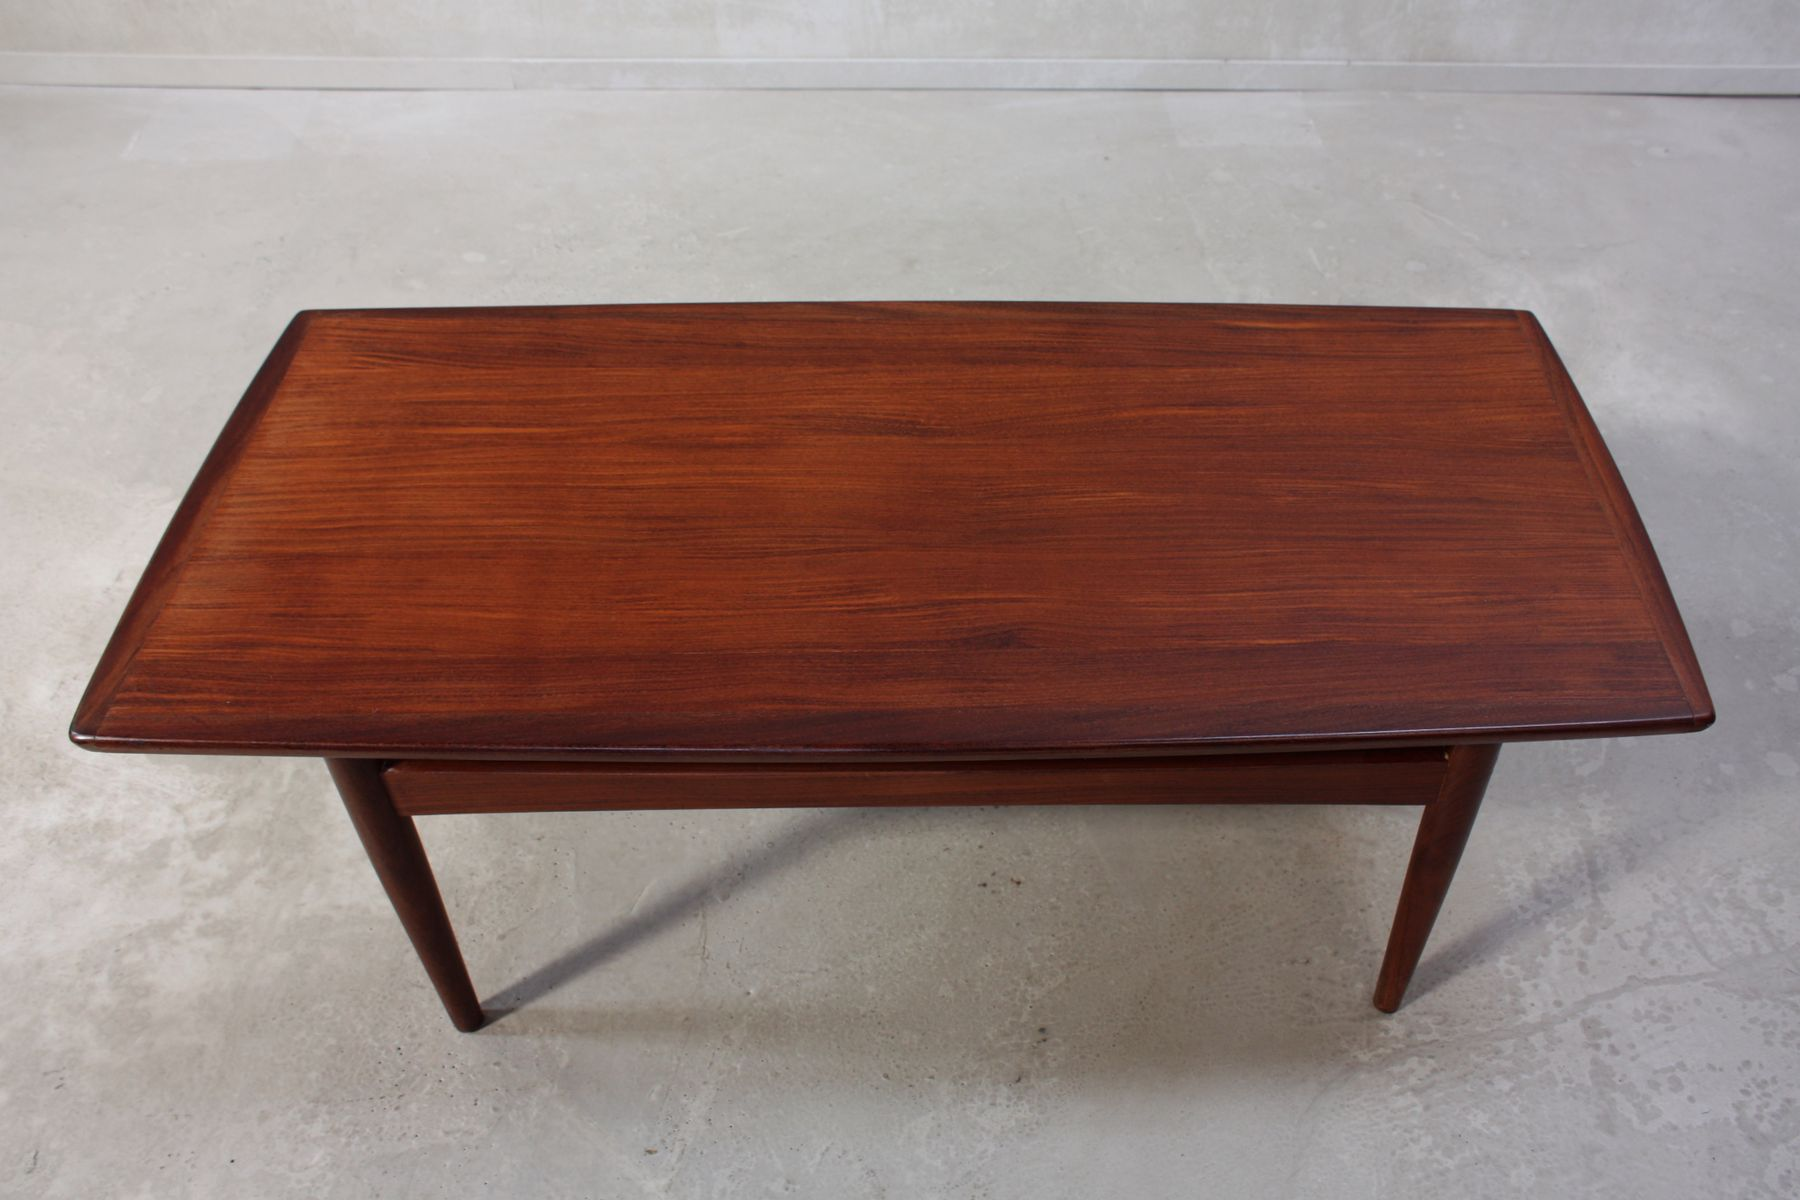 English Teak Coffee Table 1960s For Sale At Pamono